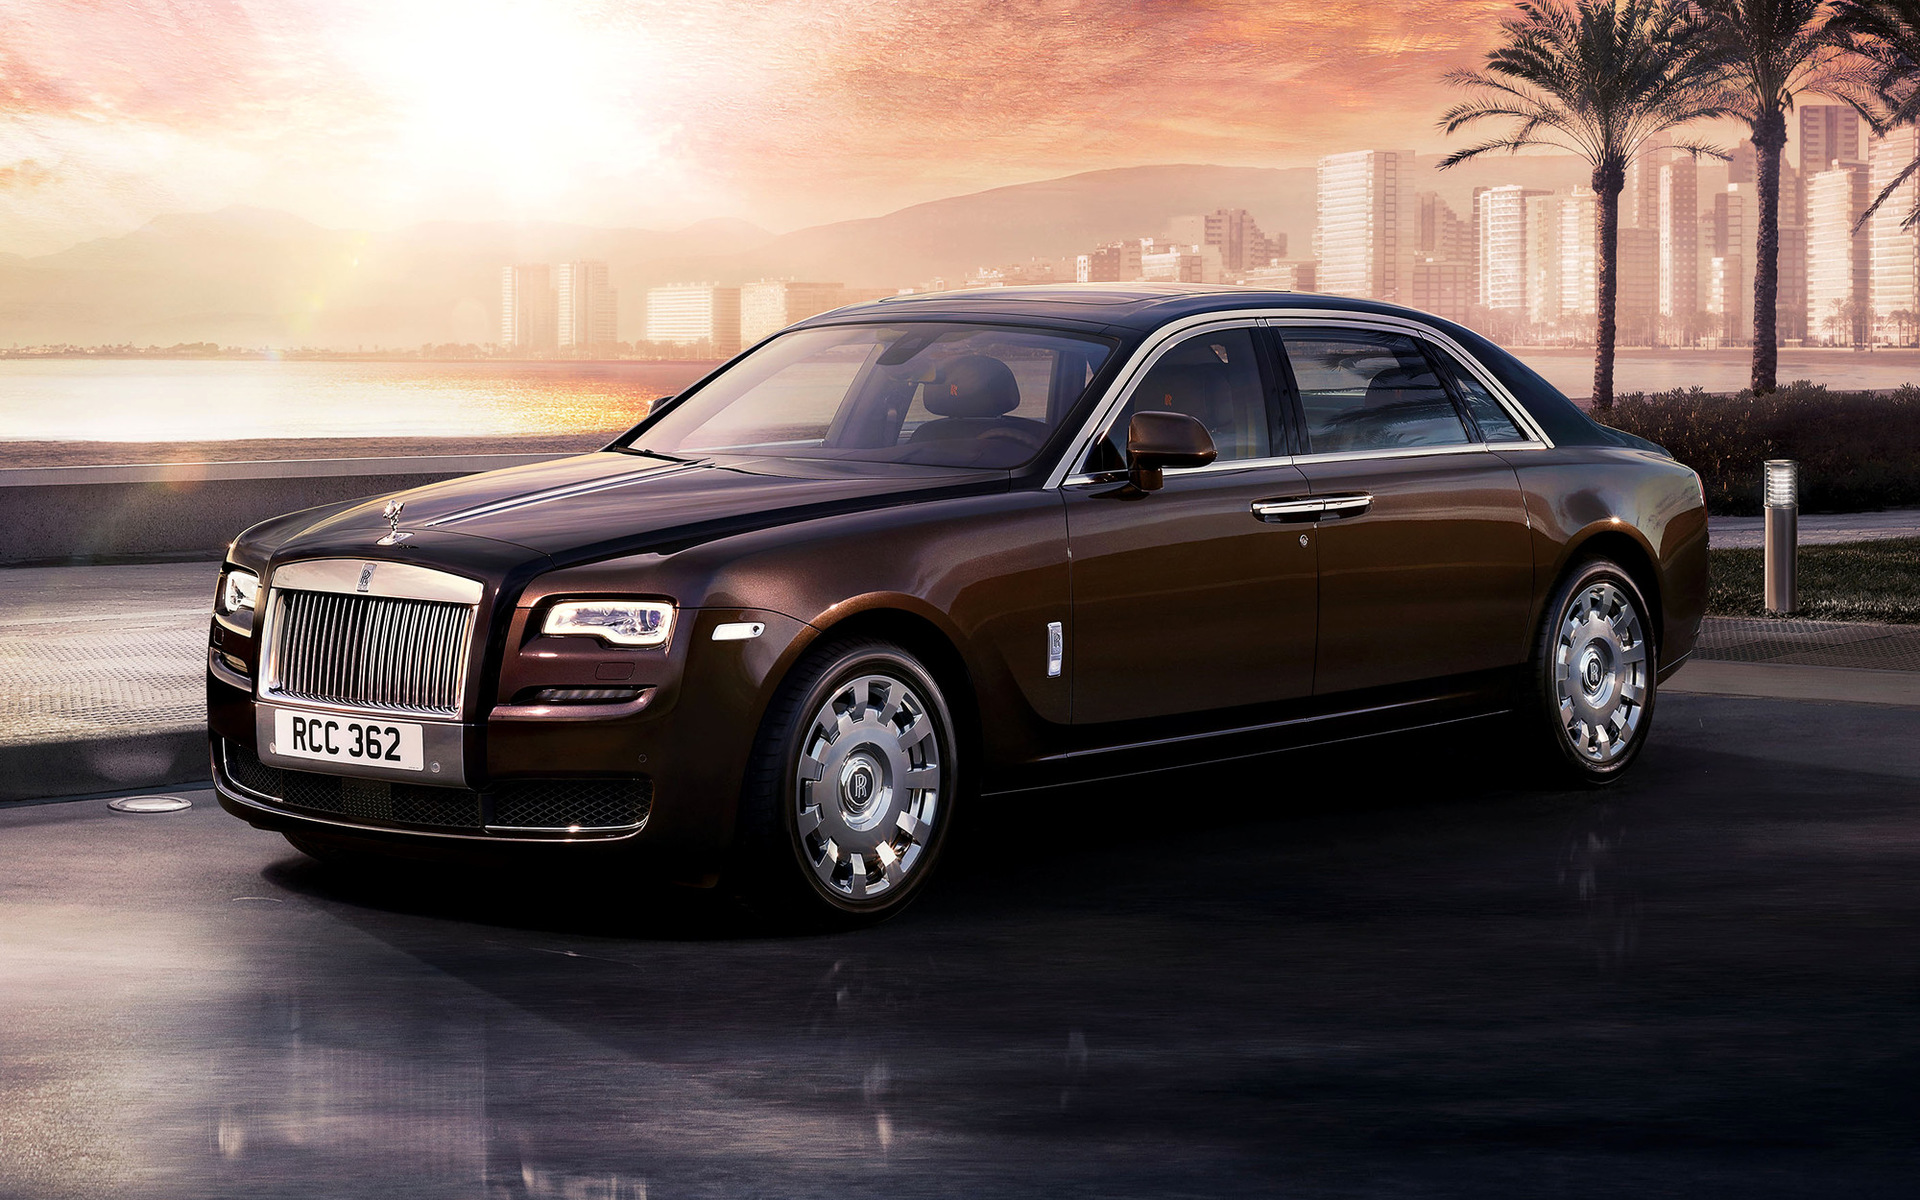 rollsroyce ghost ewb 2014 wallpapers and hd images